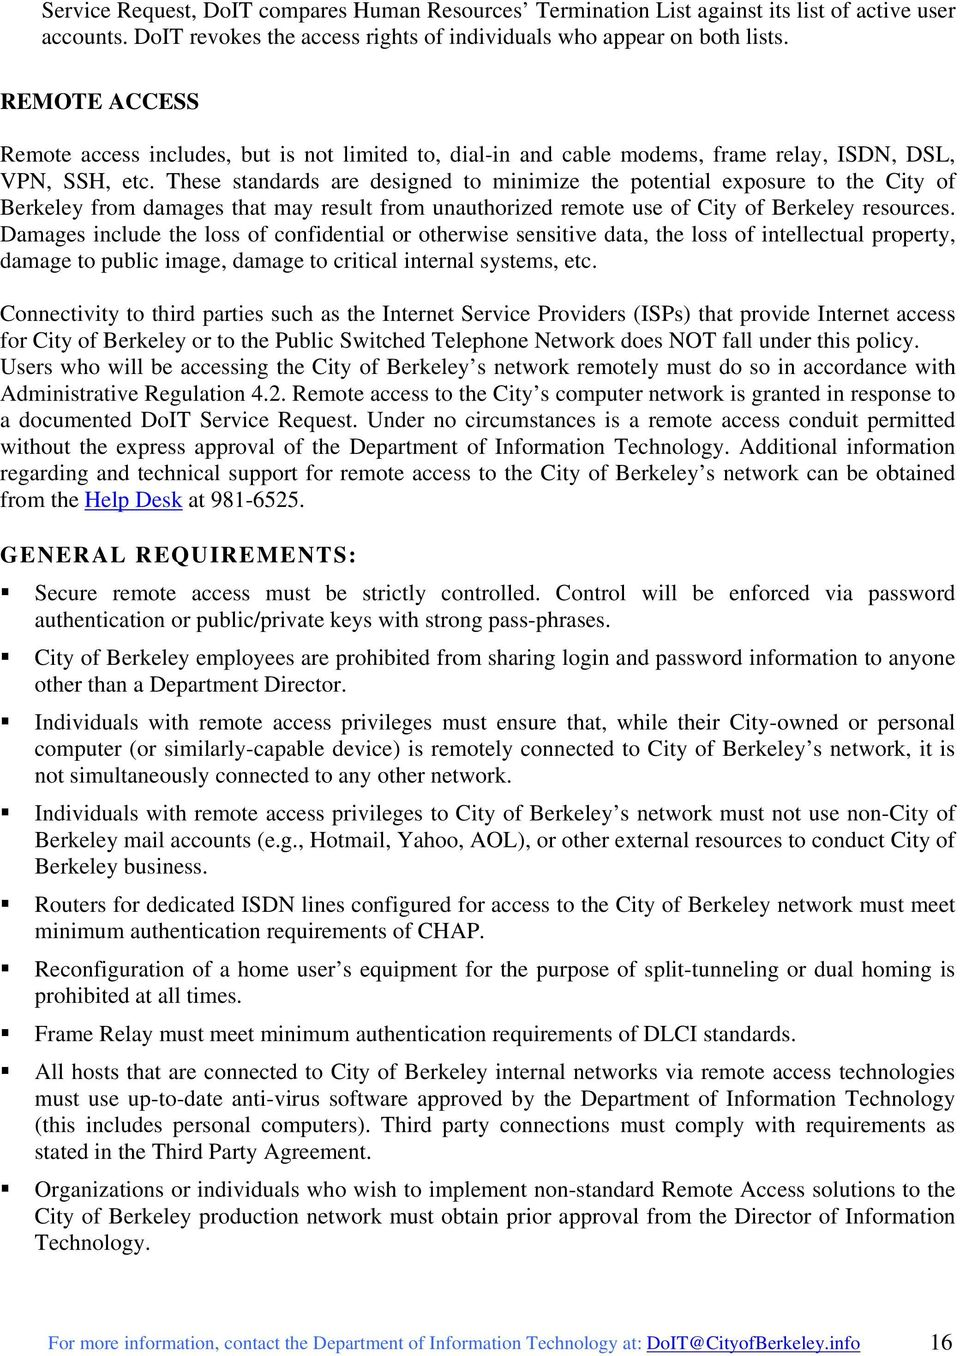 These standards are designed to minimize the potential exposure to the City of Berkeley from damages that may result from unauthorized remote use of City of Berkeley resources.